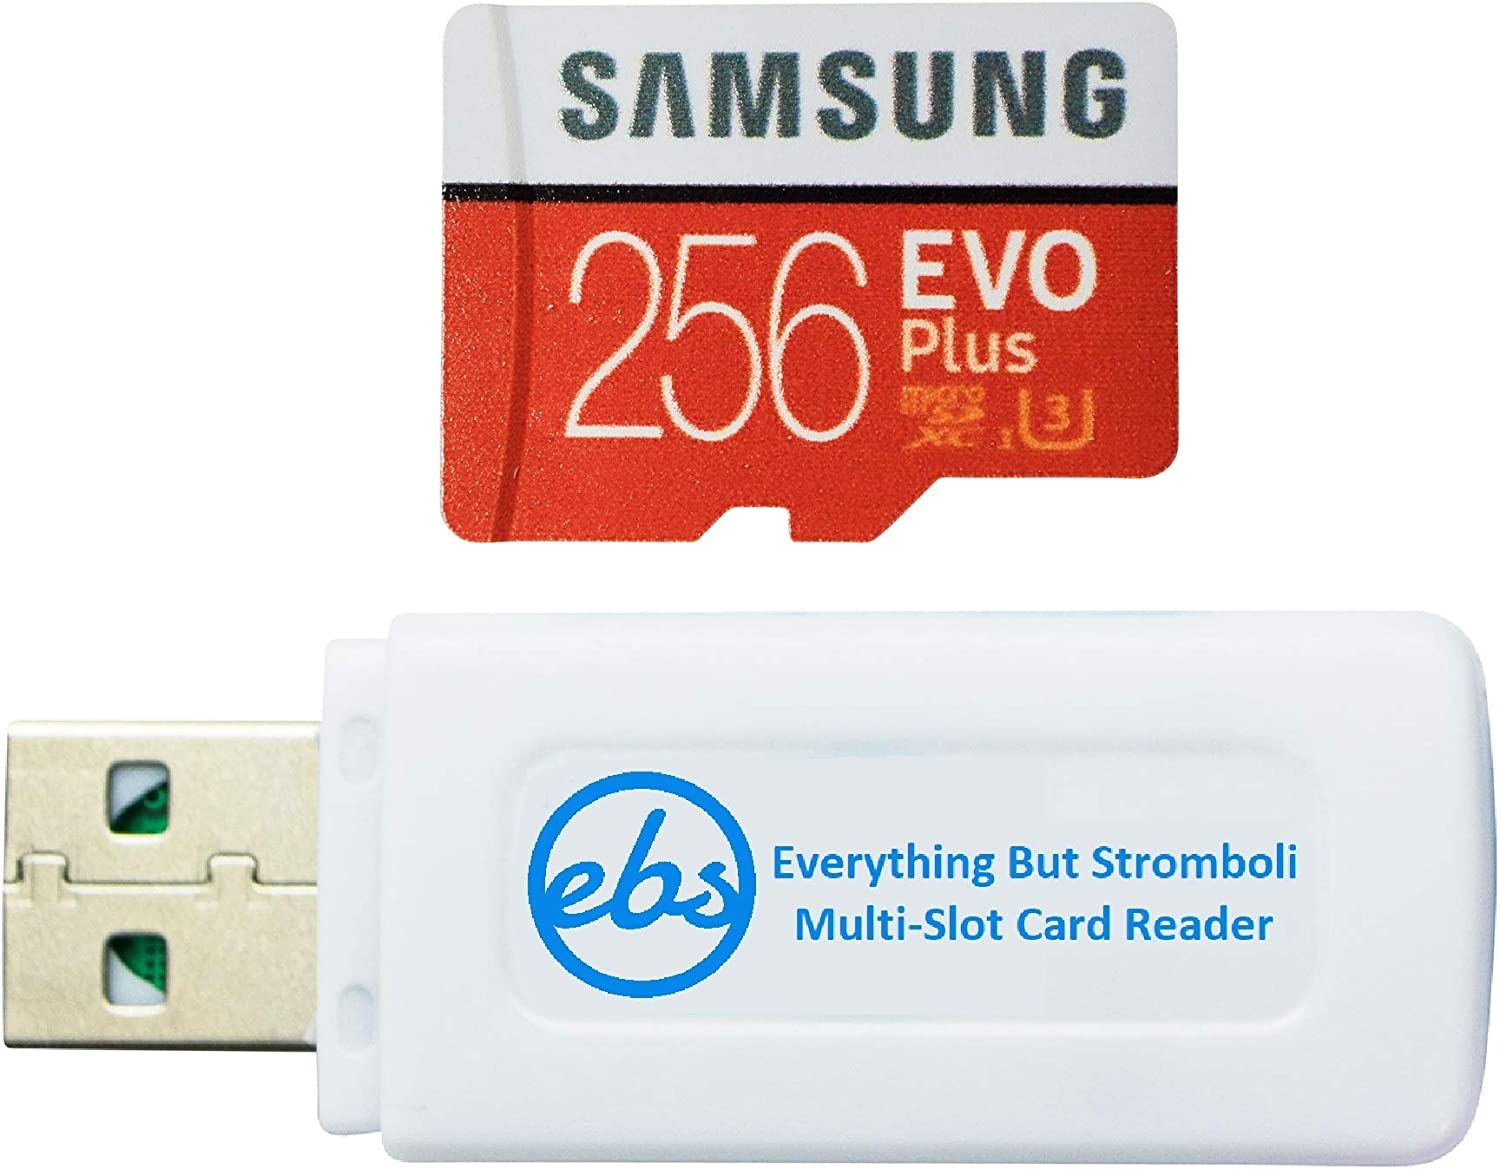 Samsung 256GB Micro SDXC EVO Plus Memory Card with Adapter Works with Samsung Galaxy S7, Tab S7+ Tablet, A21s Smartphone (MB-MC256HA) Bundle with (1) Everything But Stromboli SD, TF Card Reader